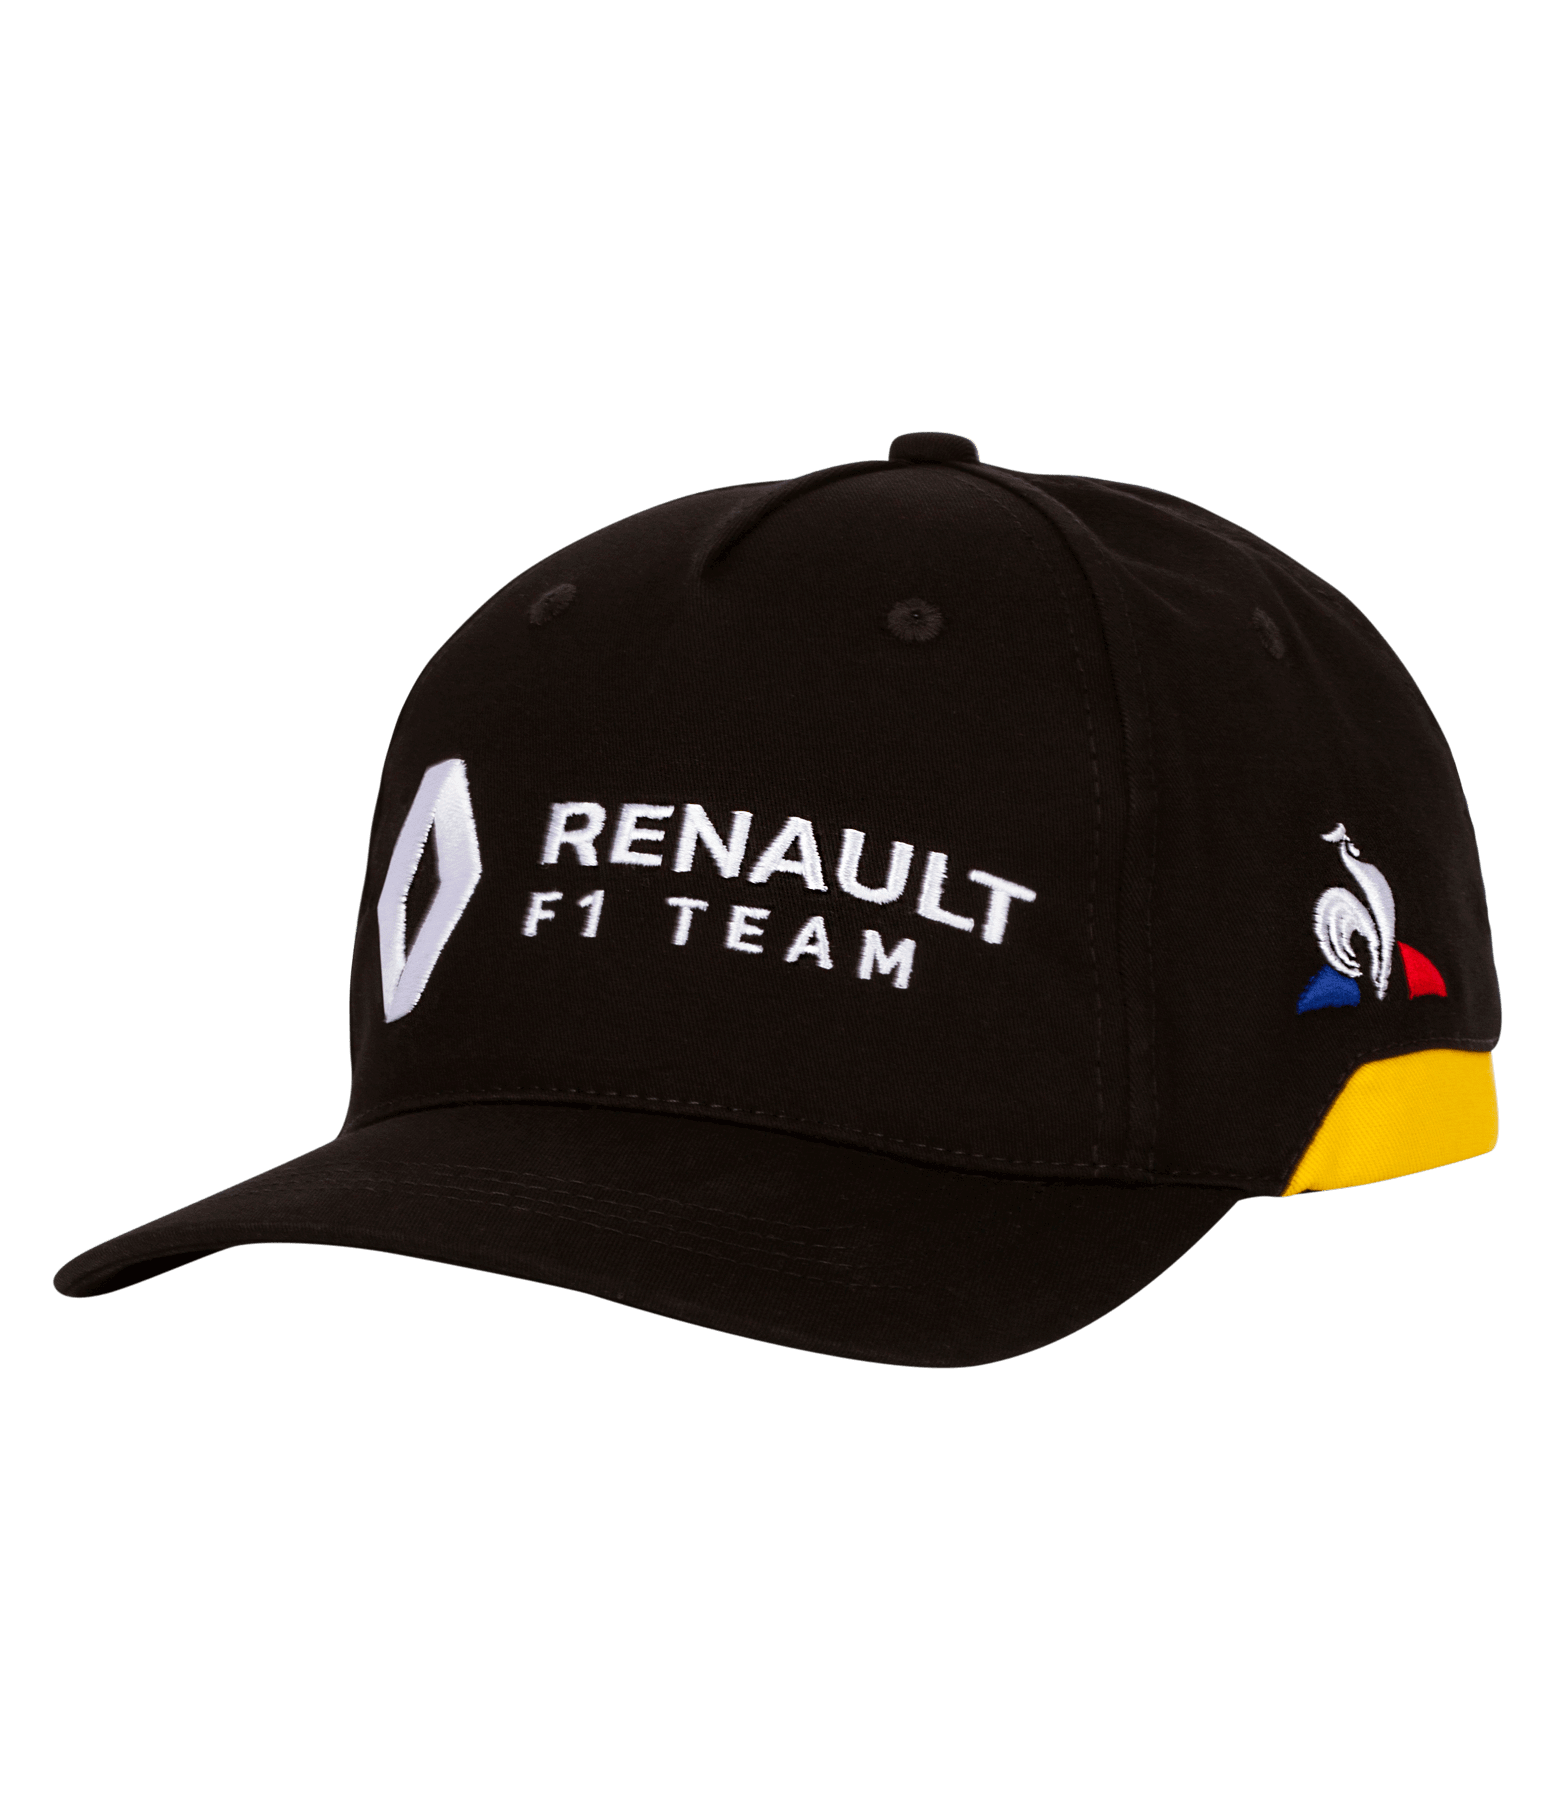 casquette renault f1 team 2019 noire site officiel rs f1. Black Bedroom Furniture Sets. Home Design Ideas